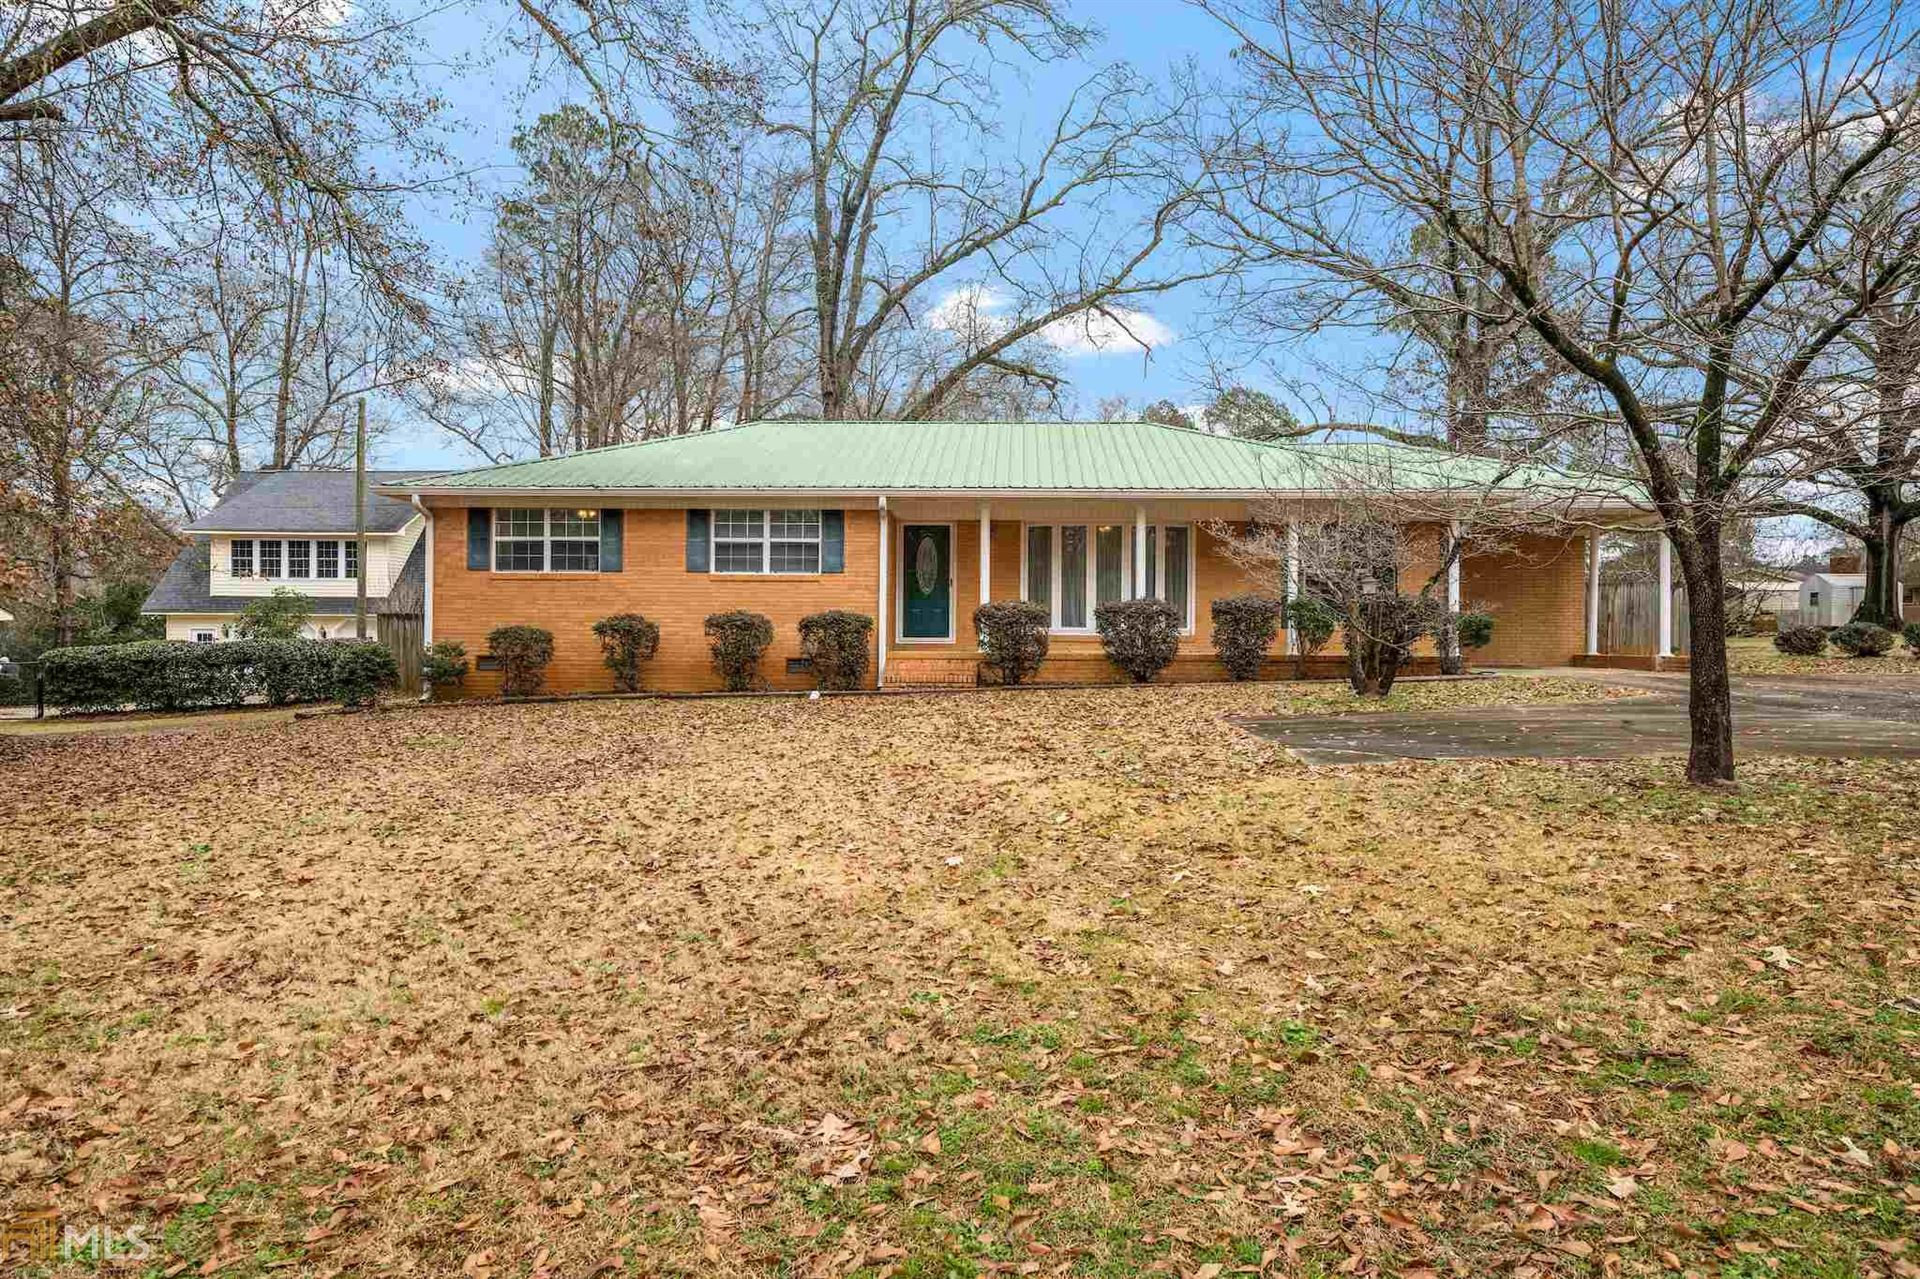 Photo of 651 Woodland Dr, Sandersville, GA 31082 (MLS # 8810271)